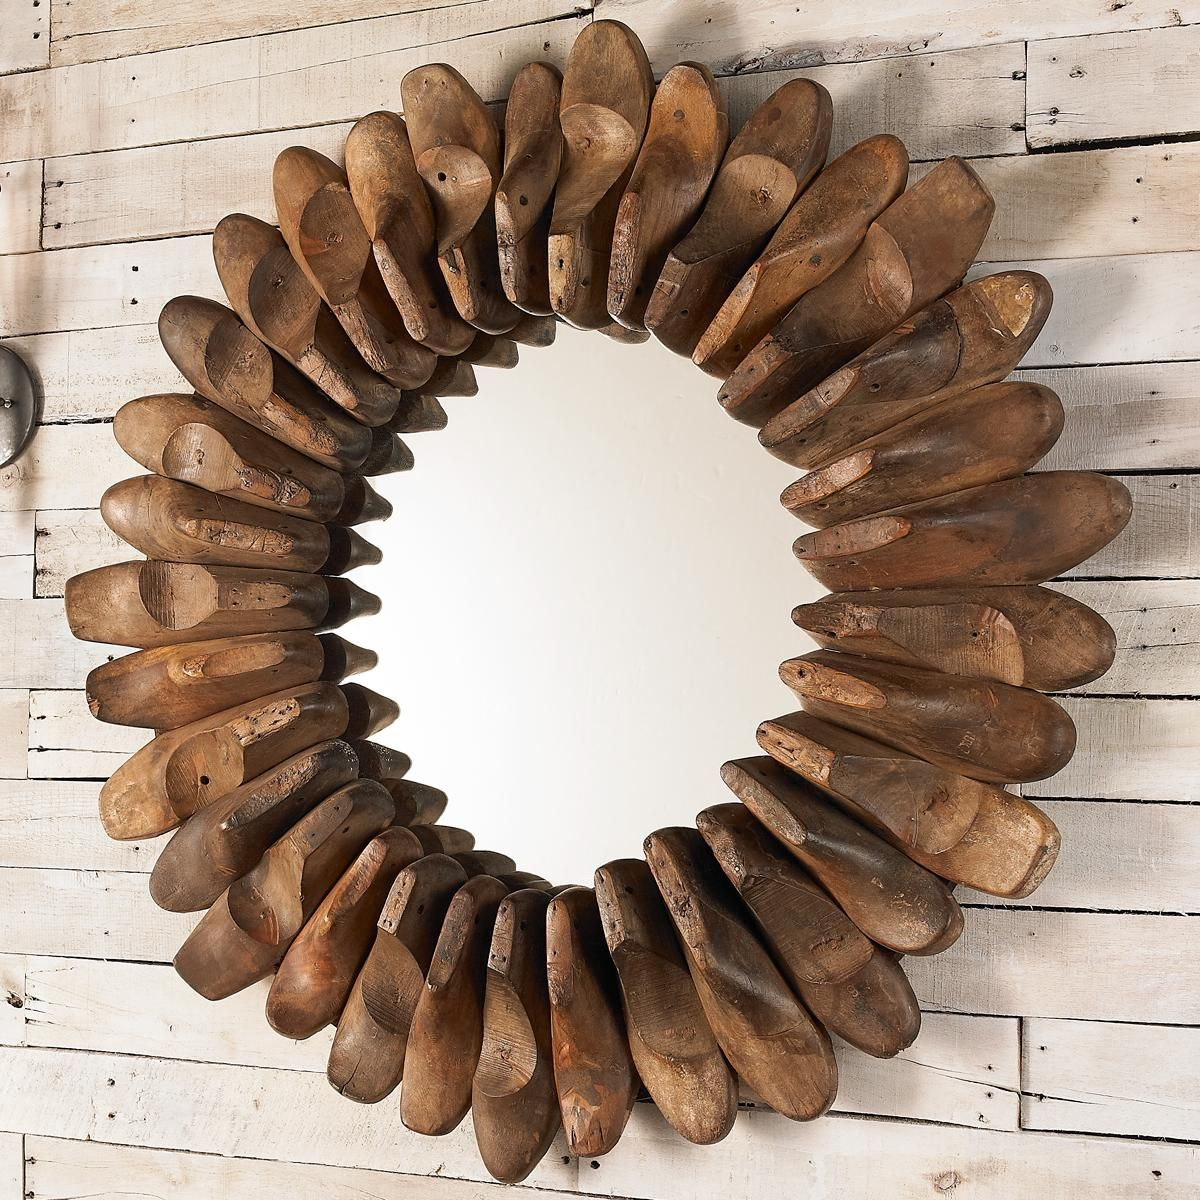 3b04f50e Antique Shoe Mold Mirror Made from real old antique wood shoe molds, each  mirror will be slightly different. A unique find for the home.  (36